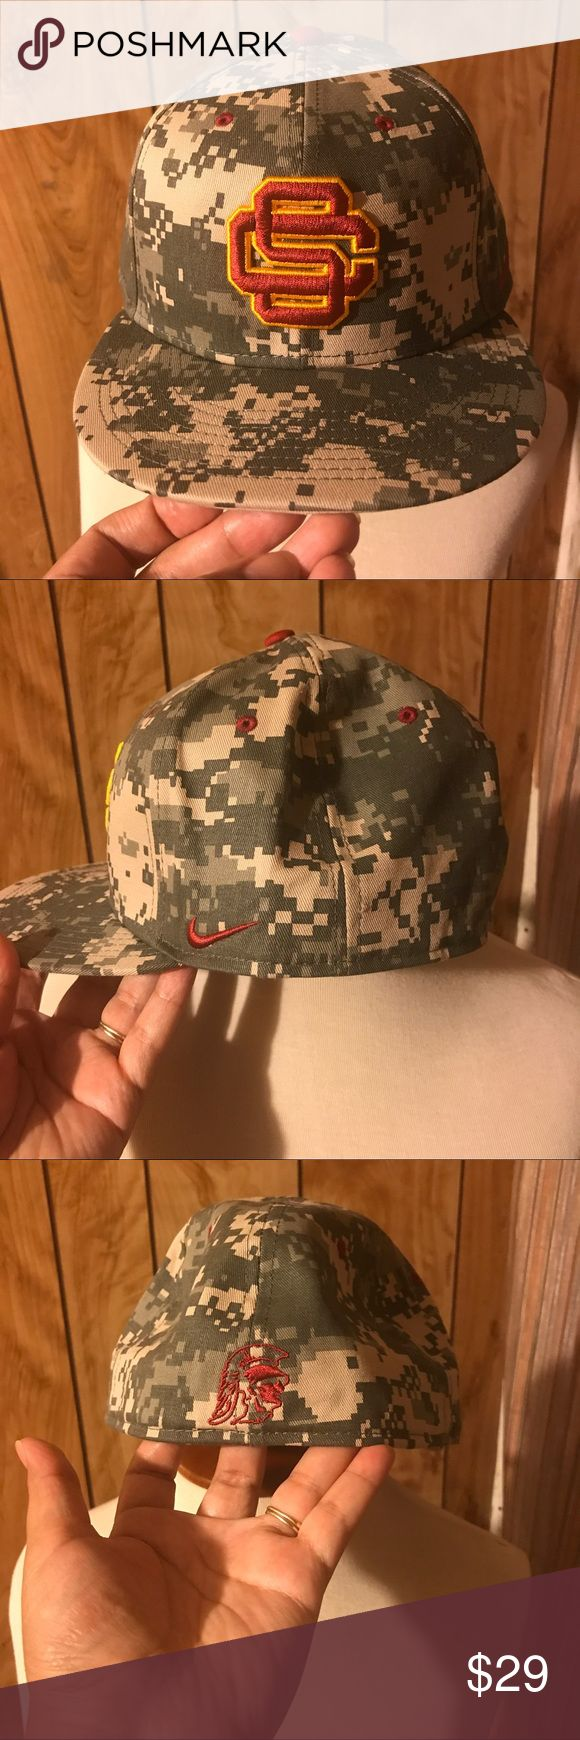 "Nike USC Trojans digital Trojans hat NIKE USC TROJANS hat  MEN'S SIZE: 7 3.8FITTED BRAND NEW..never worn..WITH TAG color: DIGITAL CAMO 100% AUTHENTIC * DIGITAL CAMO design * ""SC"" logo embroidered on front. * Swoosh embroidered on side of hat. * ""Trojans "" signature embroidered on back * embroidered air holes on top of hat. Nike Accessories Hats"